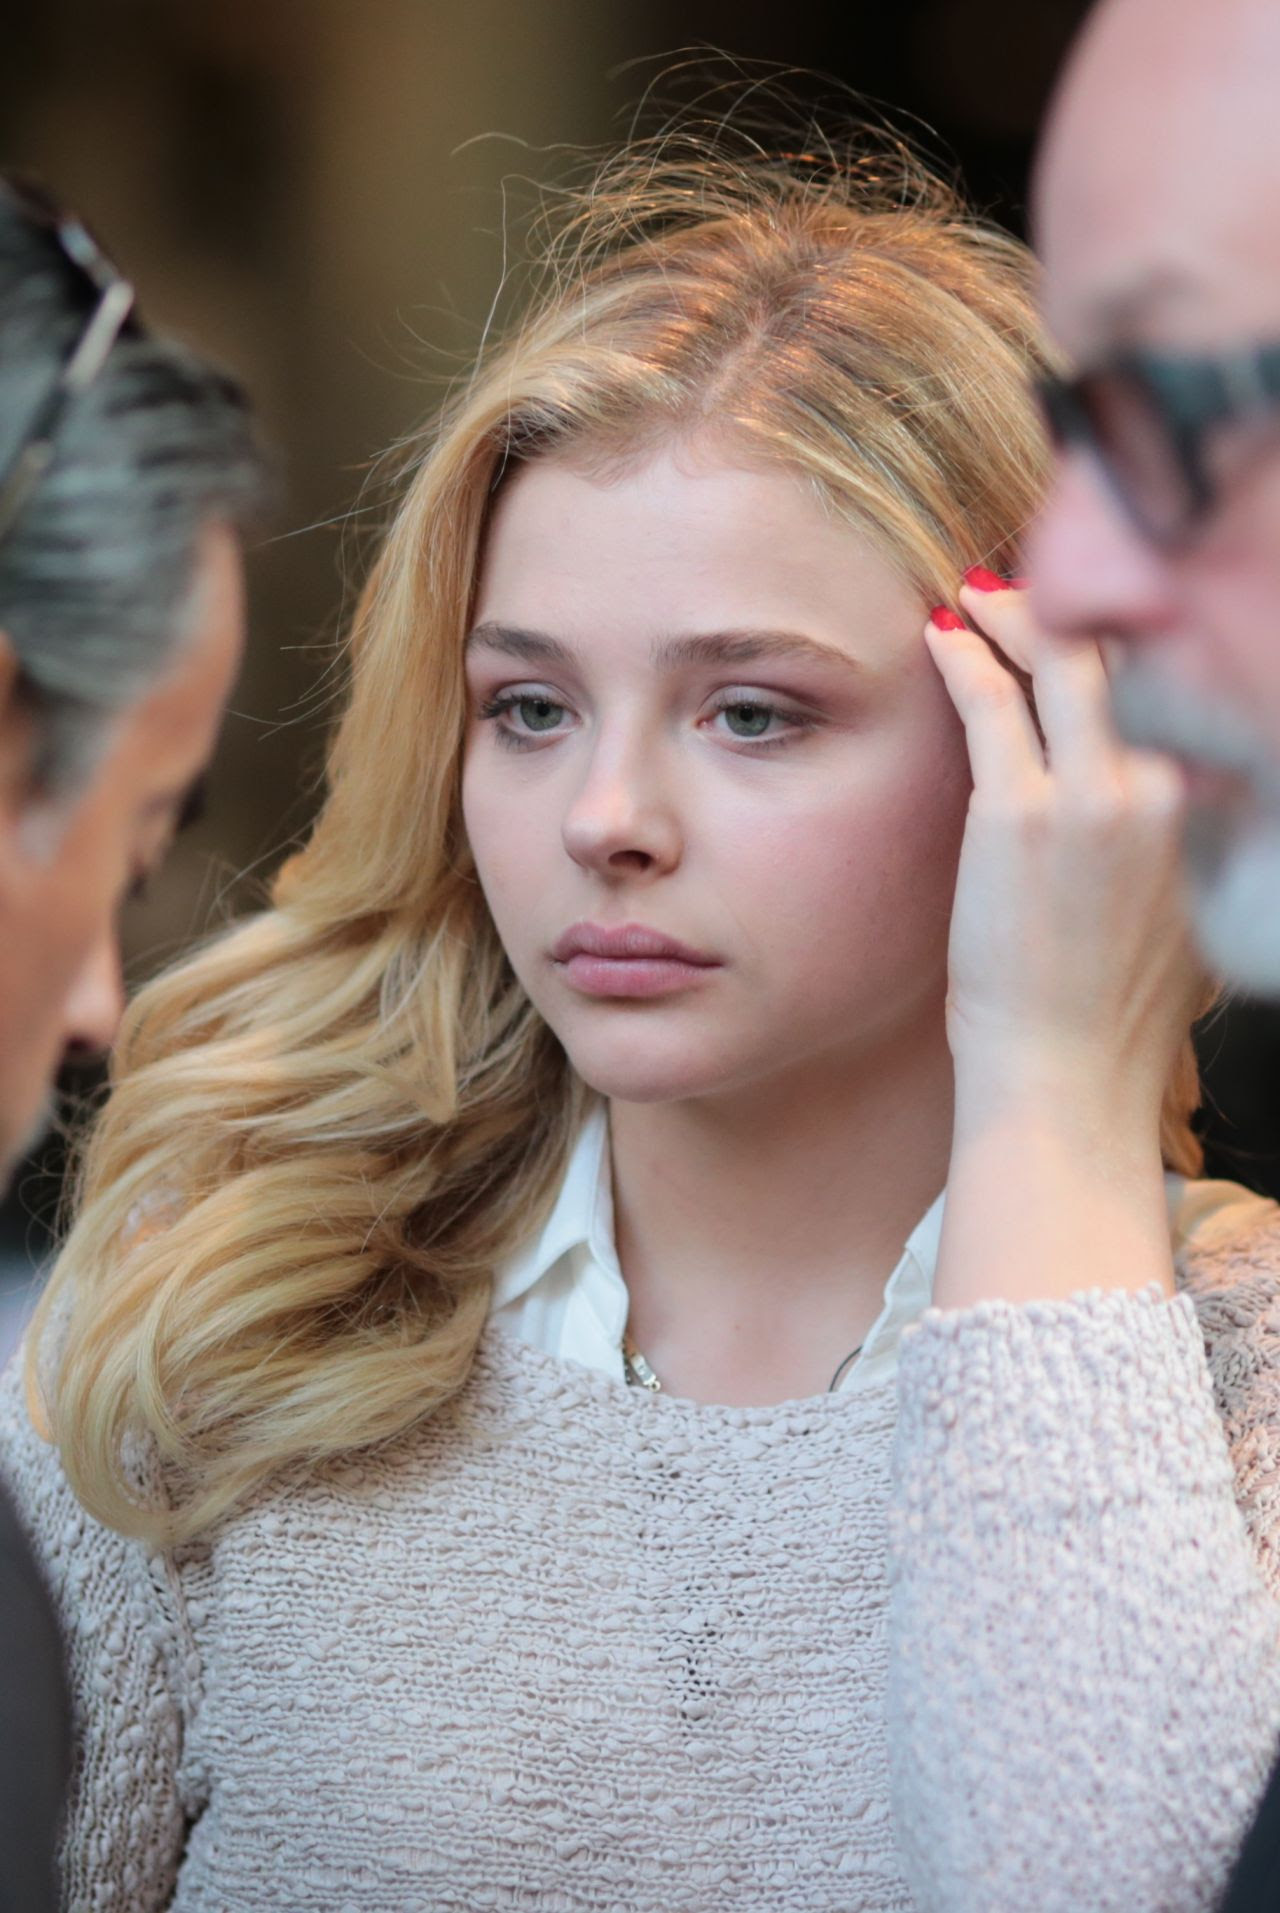 http://celebmafia.com/wp-content/uploads/2015/07/chloe-moretz-set-of-brain-on-fire-in-vancouver-july-2015_3.jpg